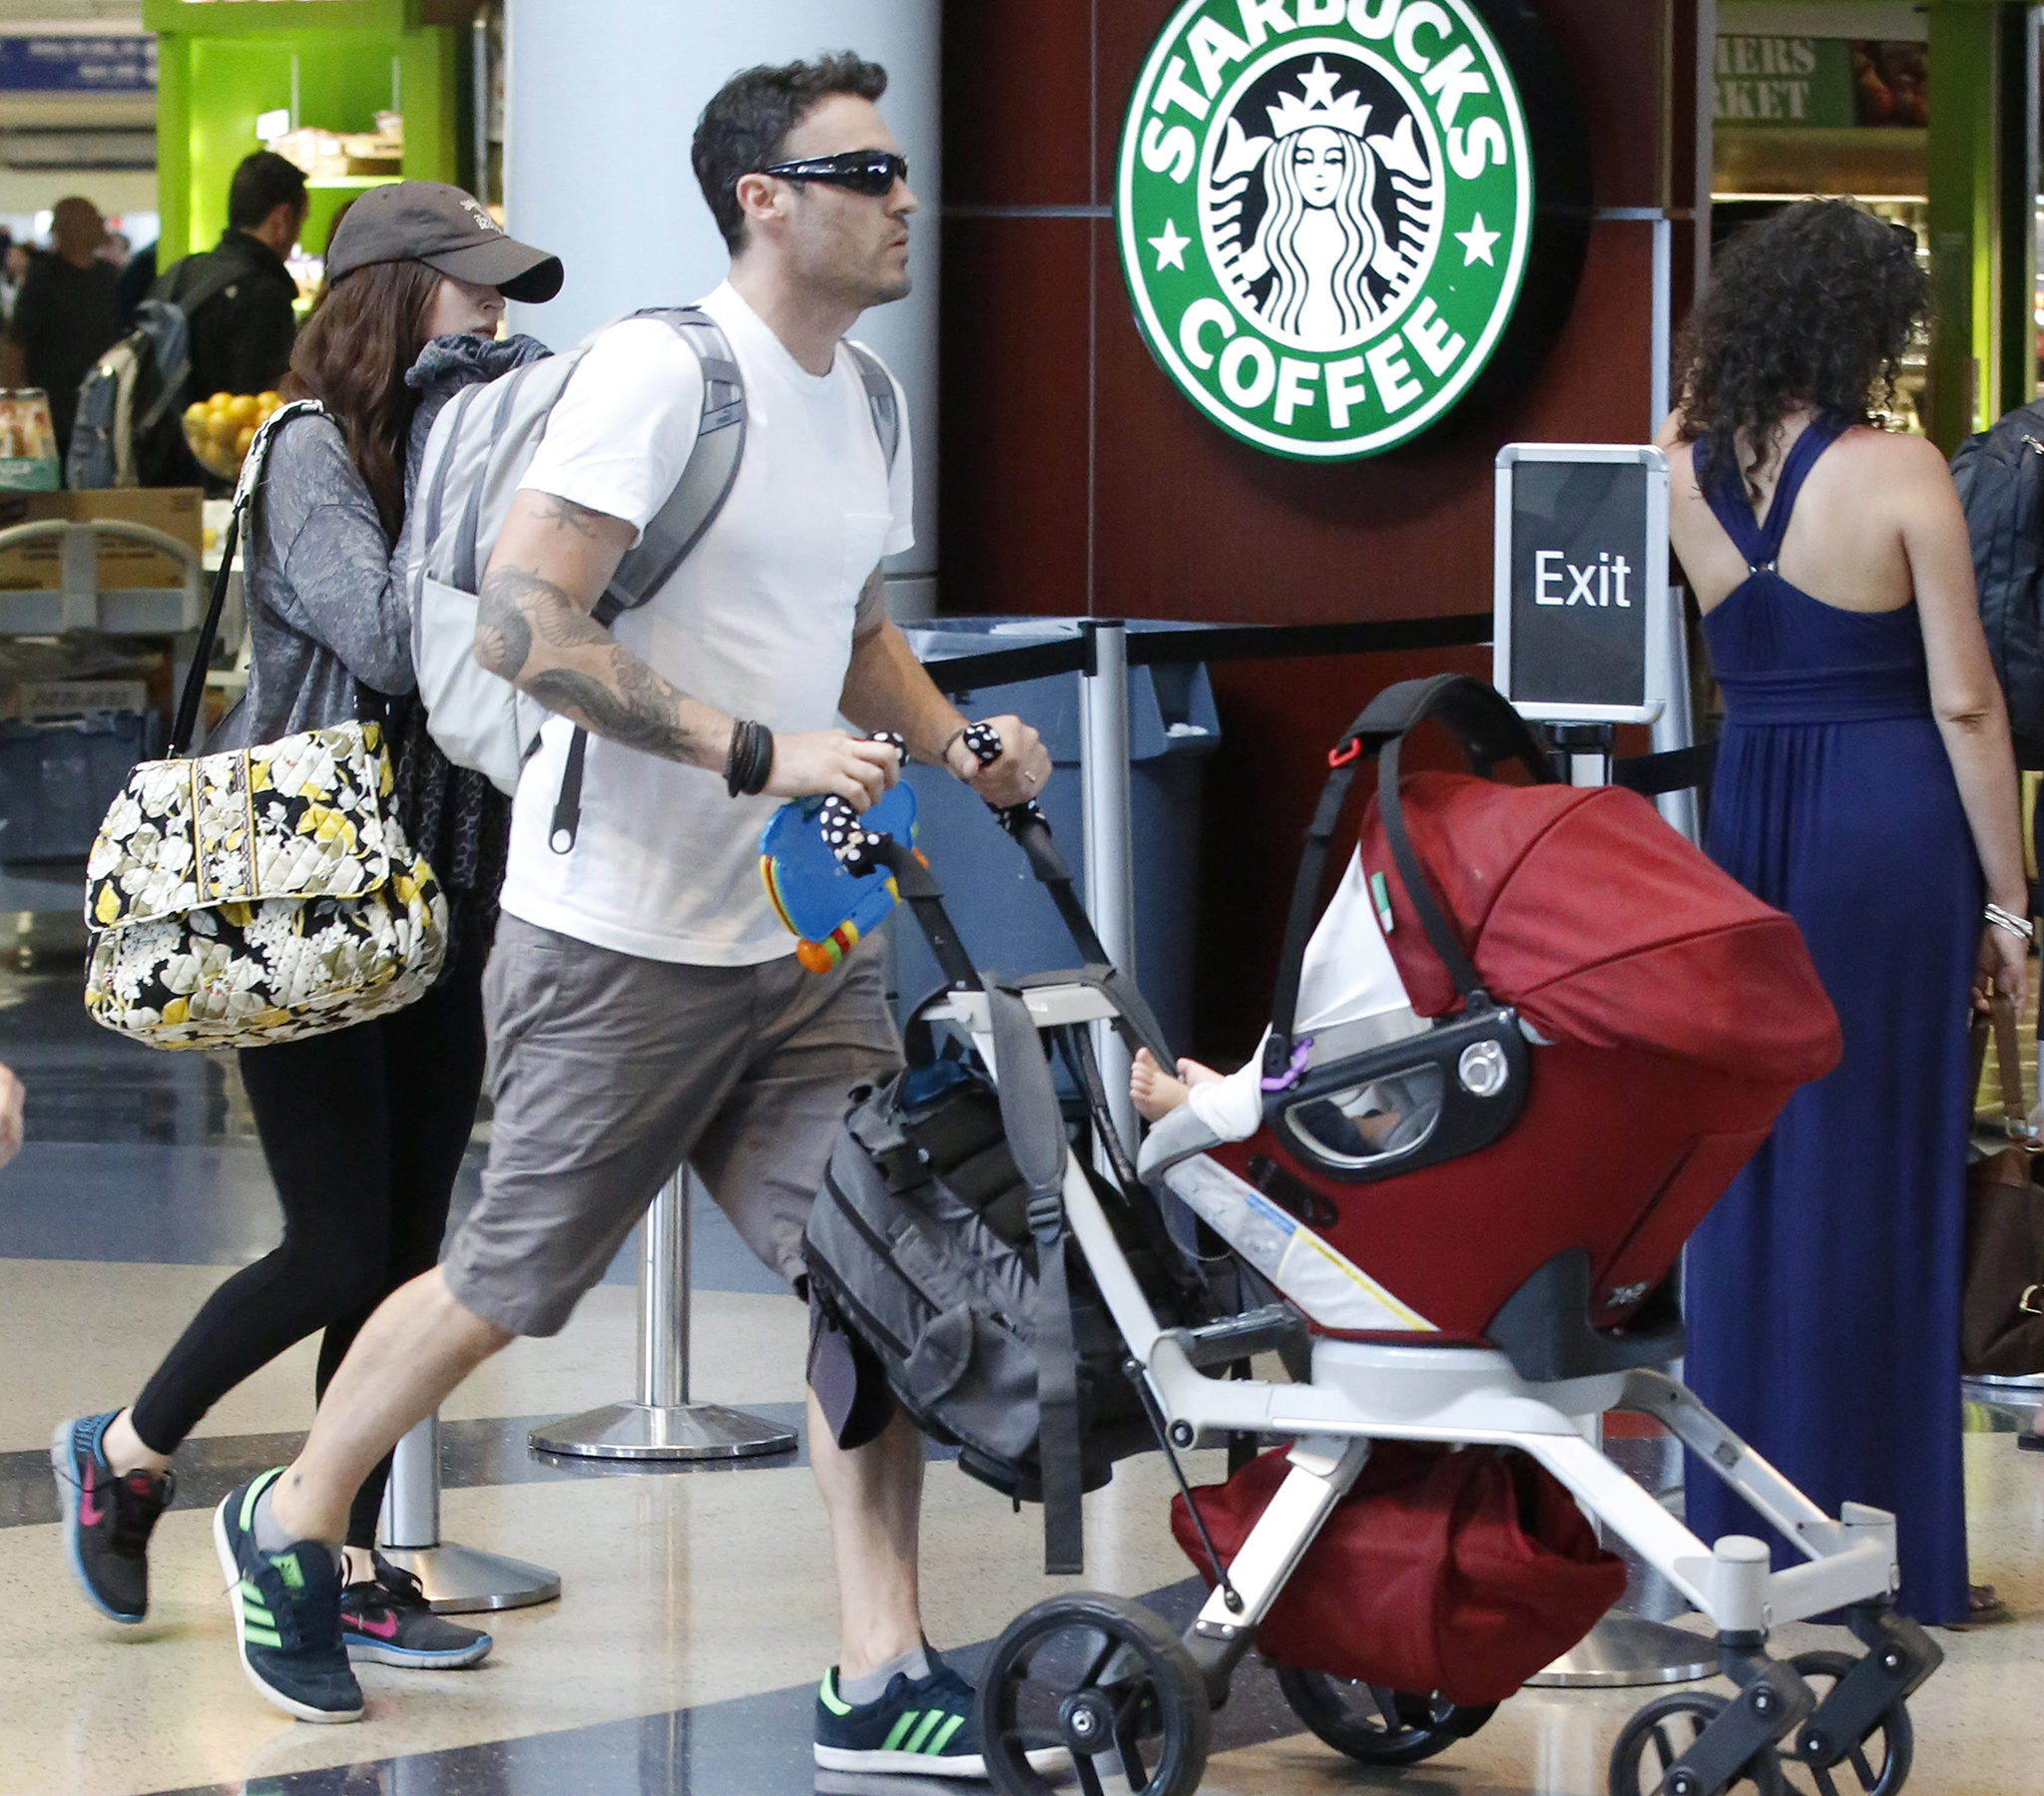 Megan Fox, Brian Austin Green, and their son's feet (Sharky/Splash News)